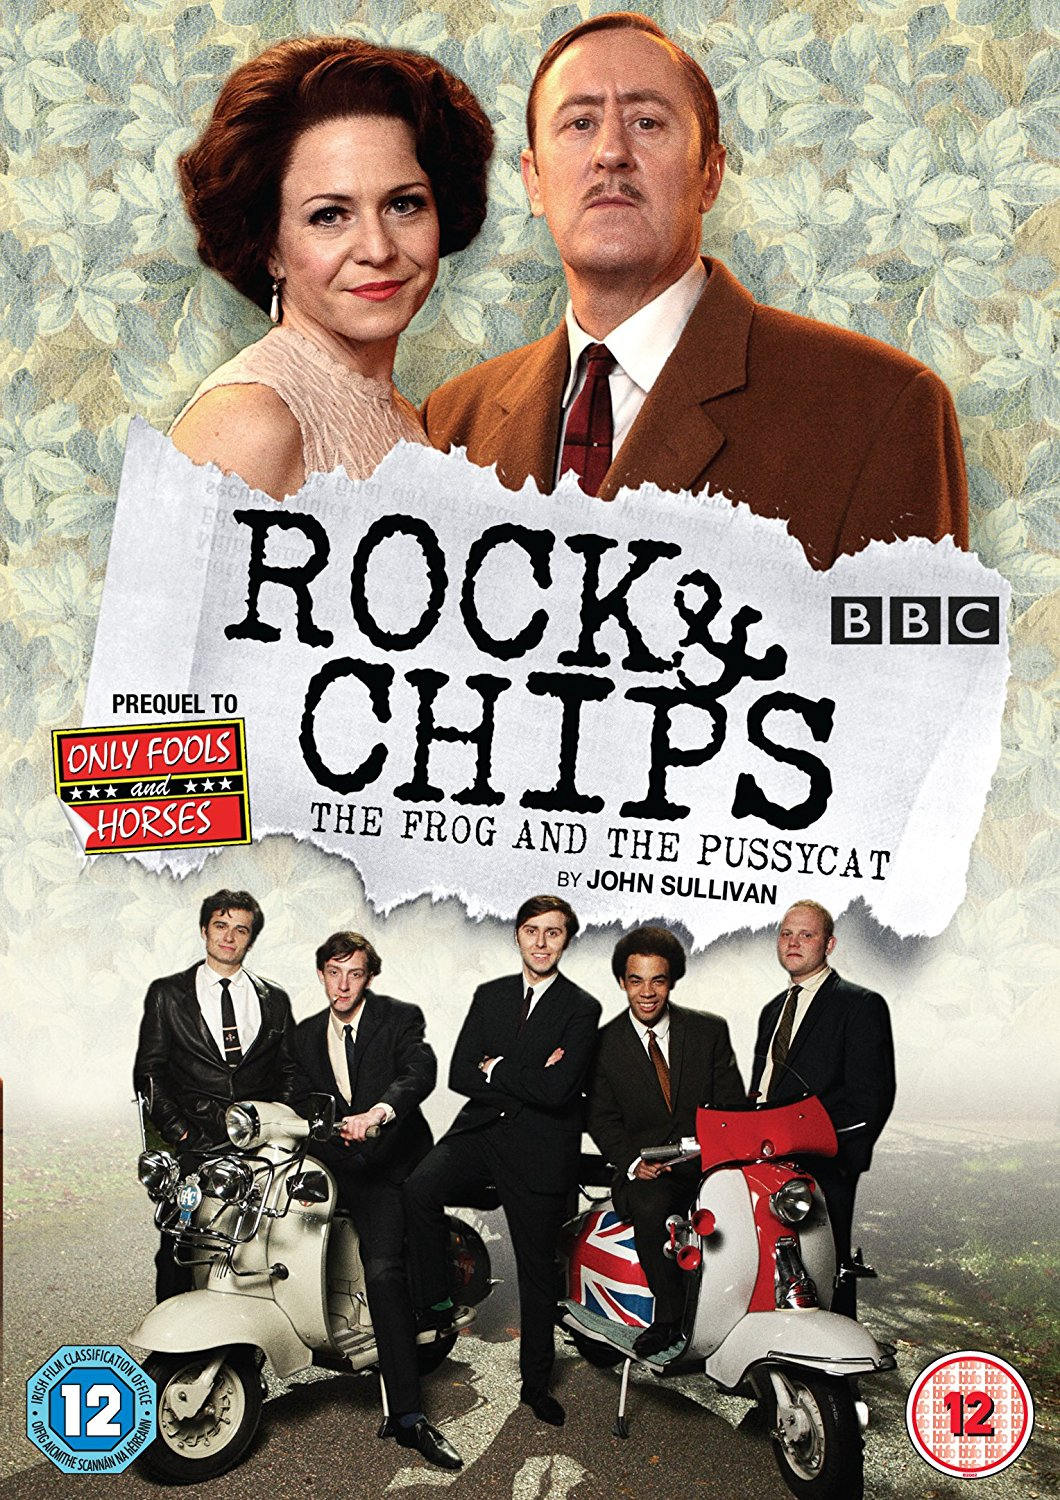 Rock And Chips 3 - The Frog And The Pussycat (DVD)